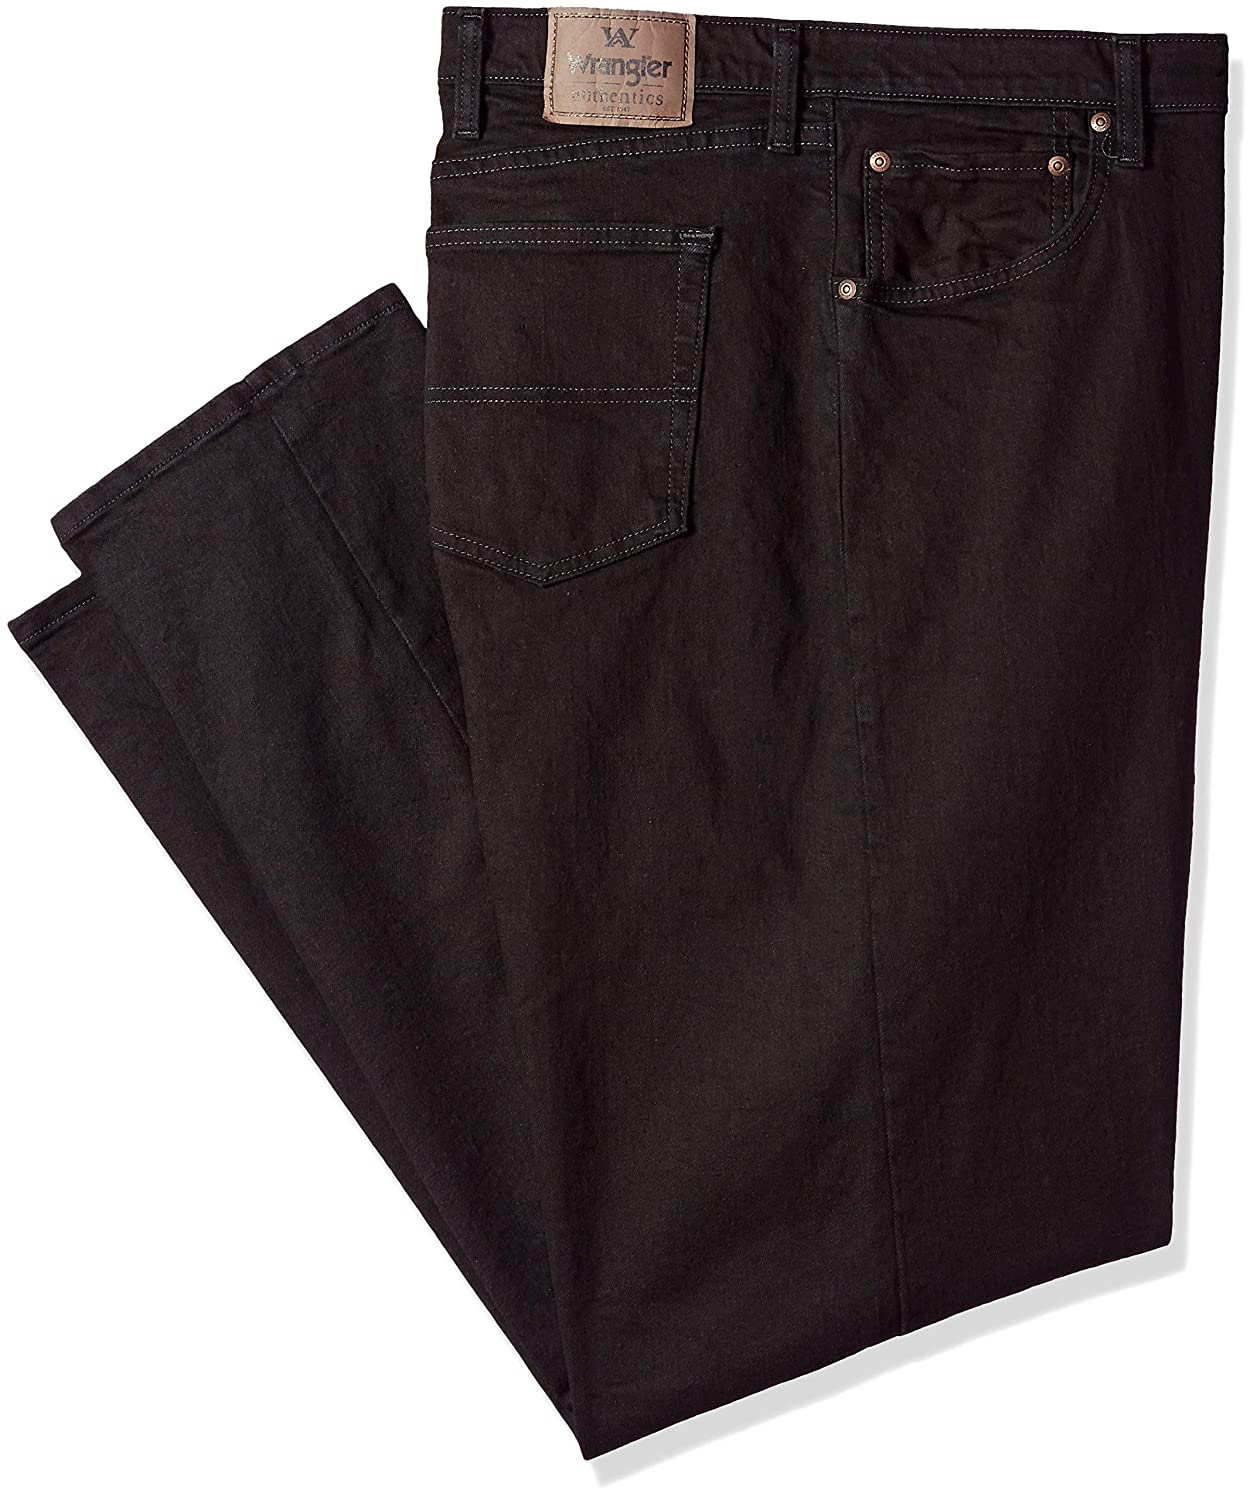 Wrangler Authentics Men's Big & Tall Classic Comfort-Waist Jean ZM1CSCBB